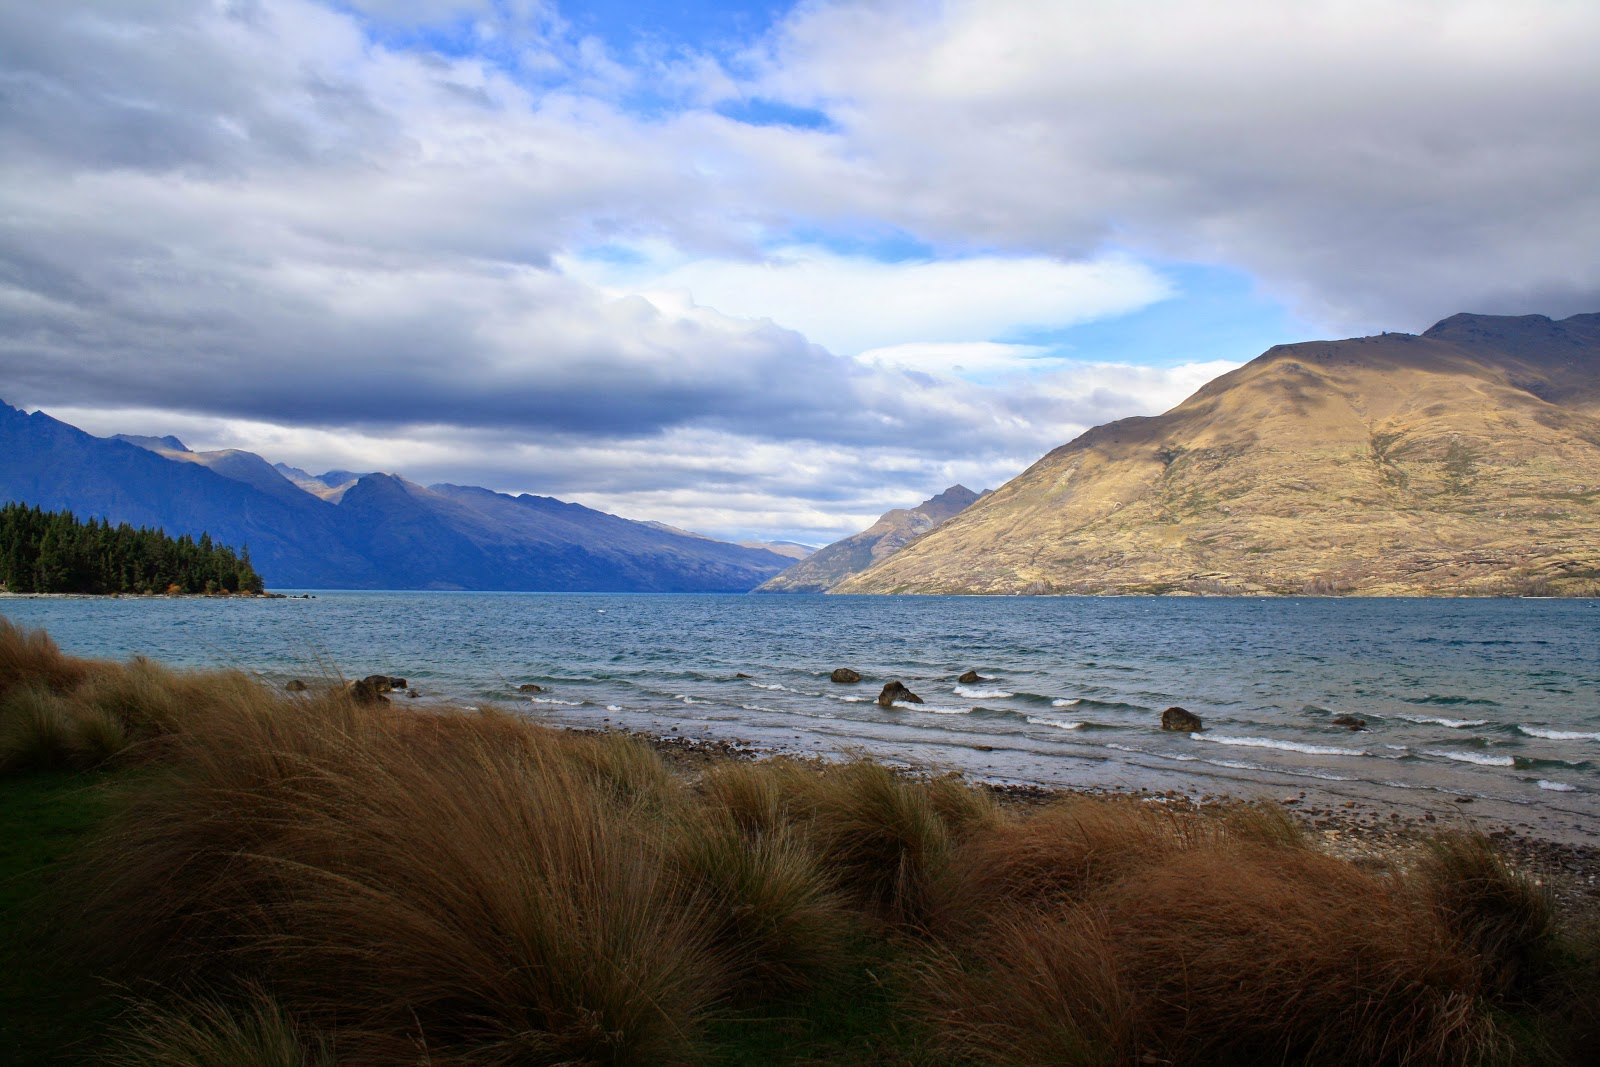 More tussock grass at Lake Wakatipu, Queenstown.